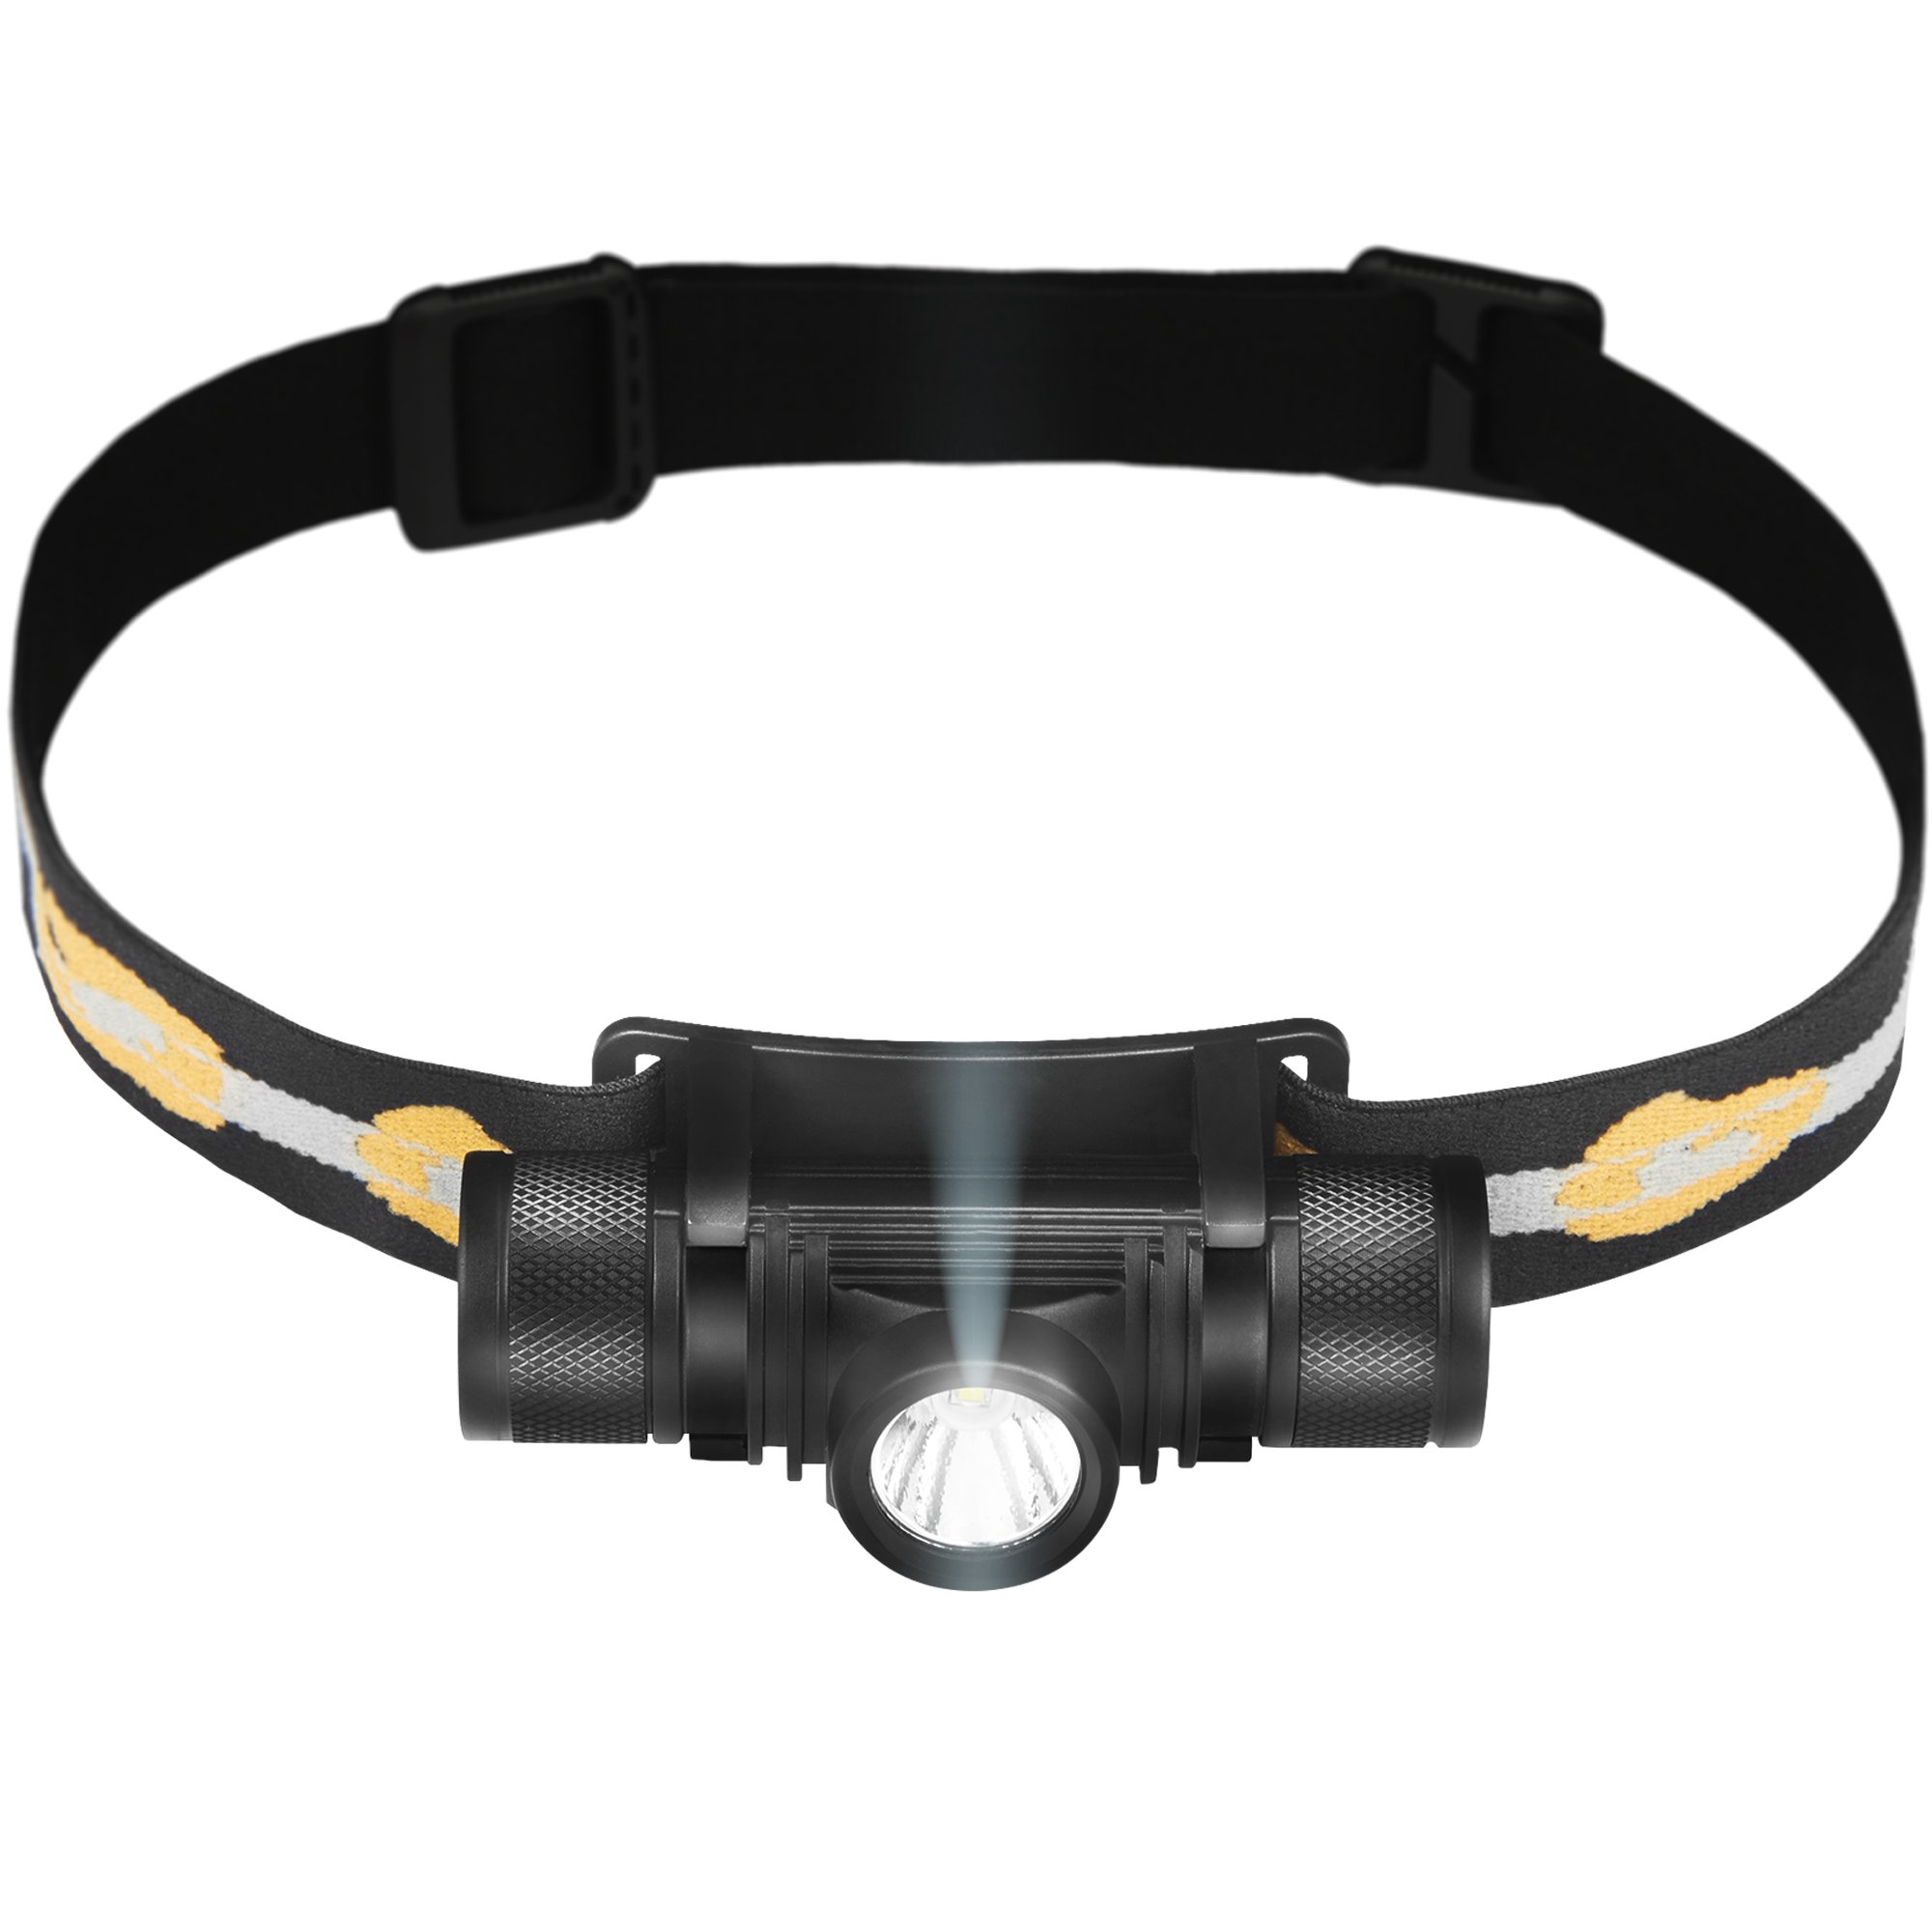 Phonar 500 Lumen Rechargeable LED Headlamp w/ 2200 mAh Battery - Durable, Waterproof and Dustproof Headlight - Amazing 220-yards Beam - Works as Camping and Hiking Gear